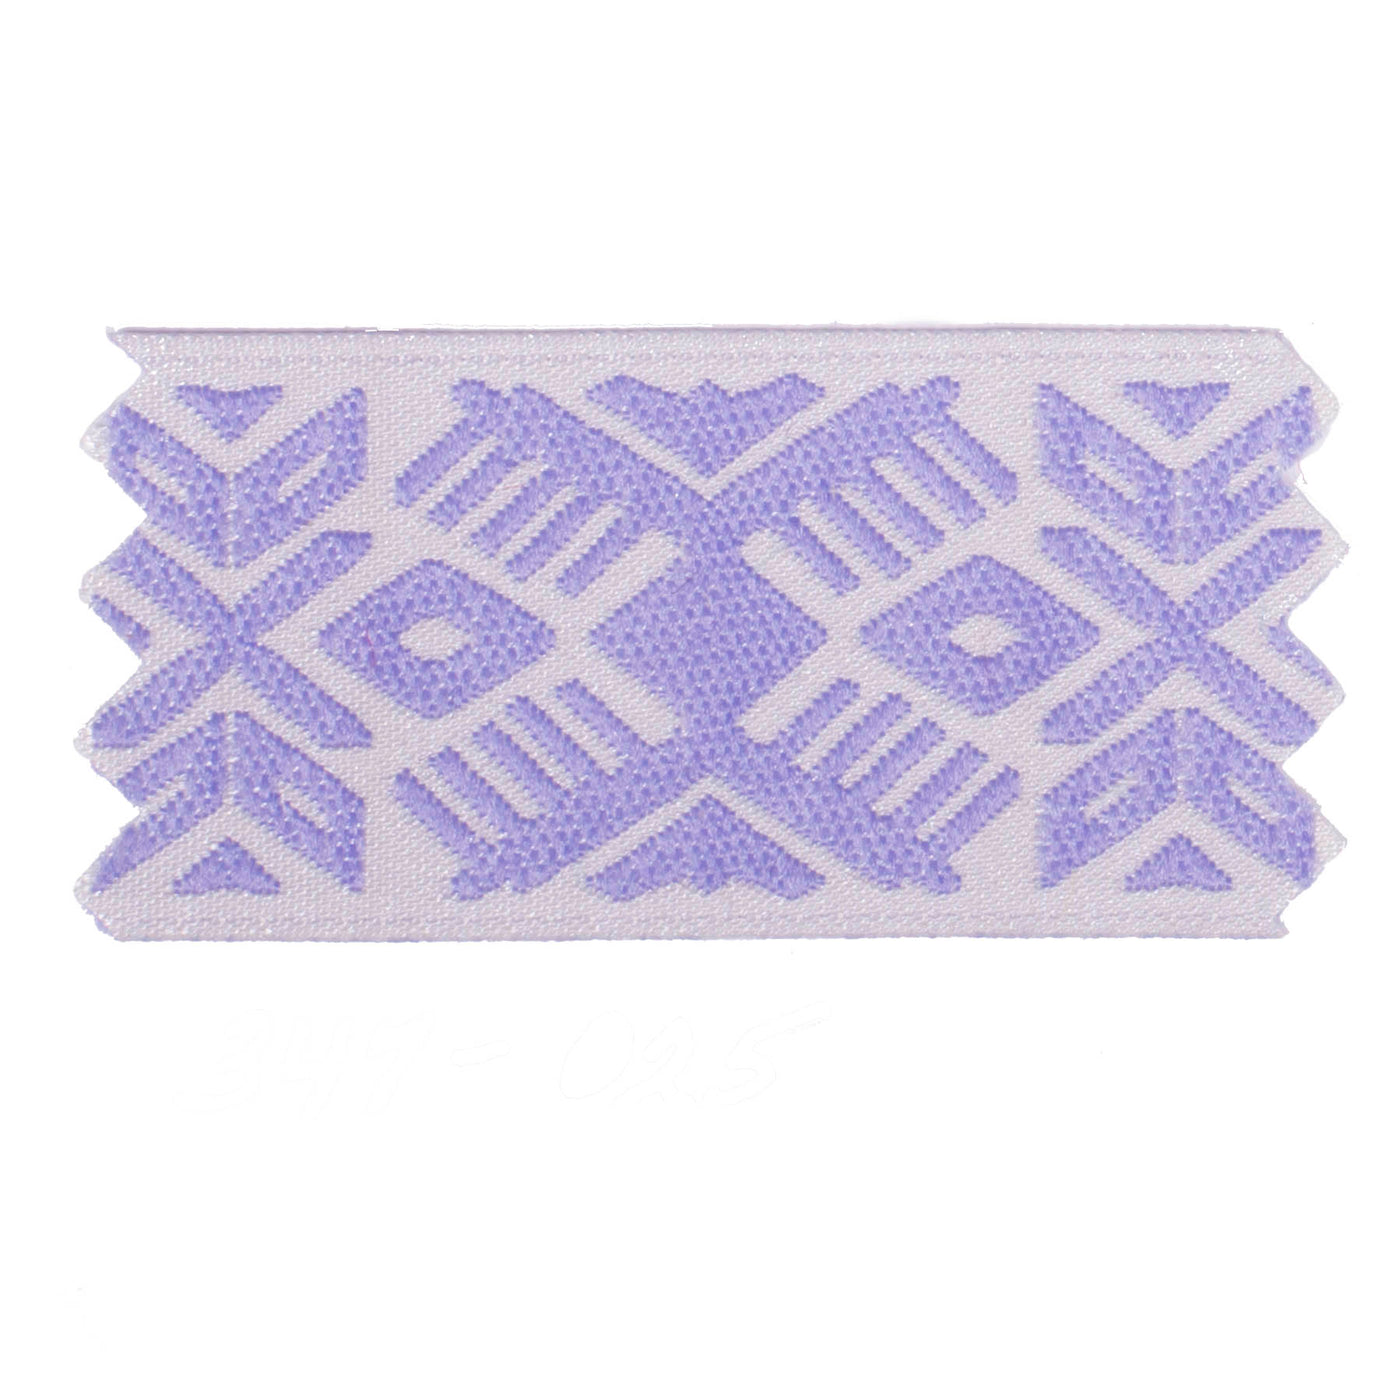 "1"" Inch Braid Lilac Design 1025437"